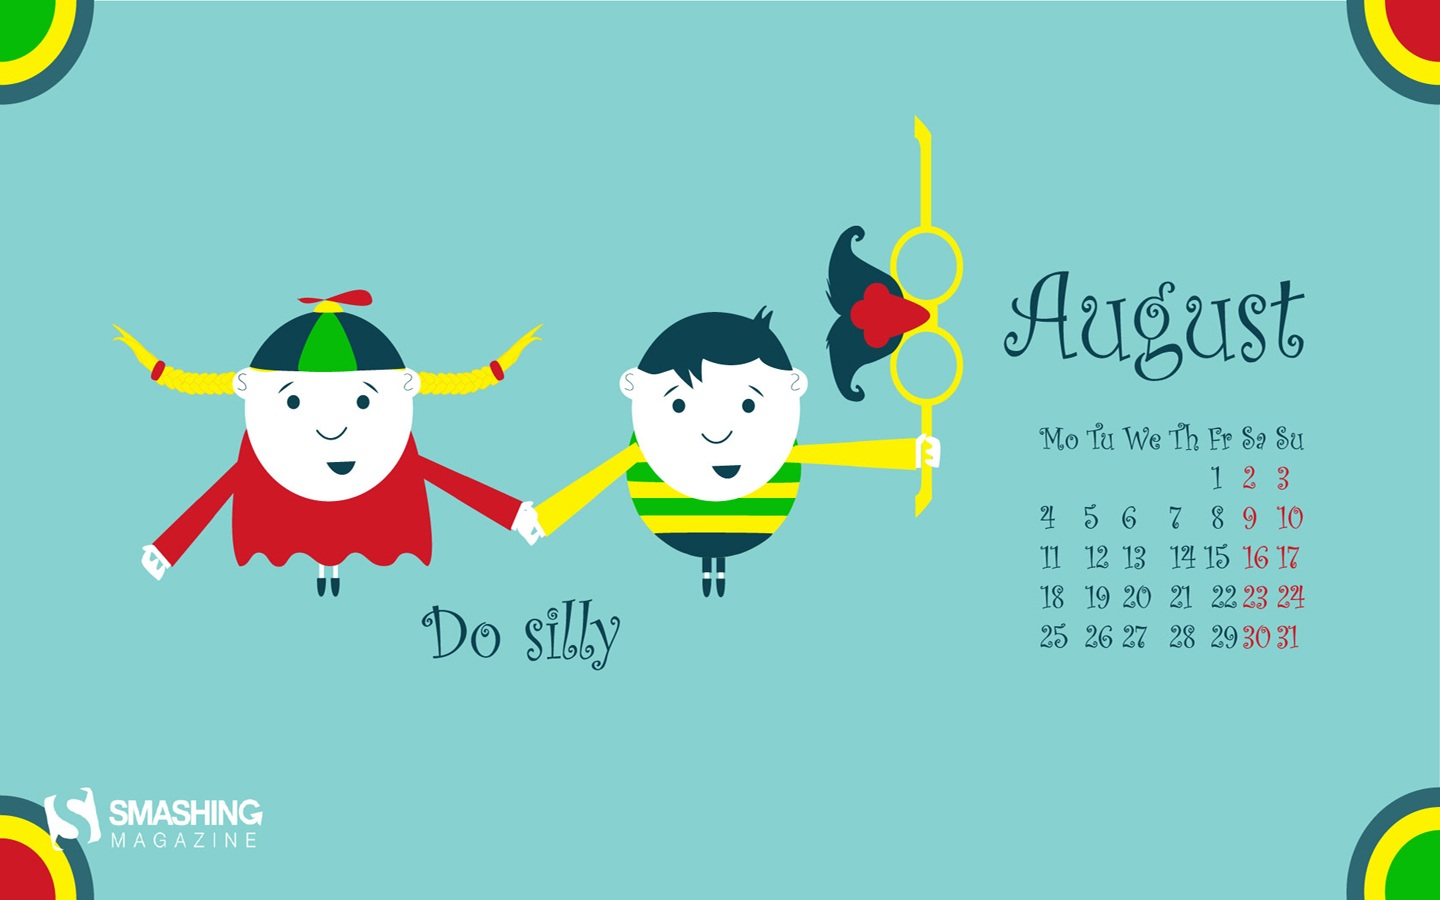 In January Calendar Wallpapers 50833